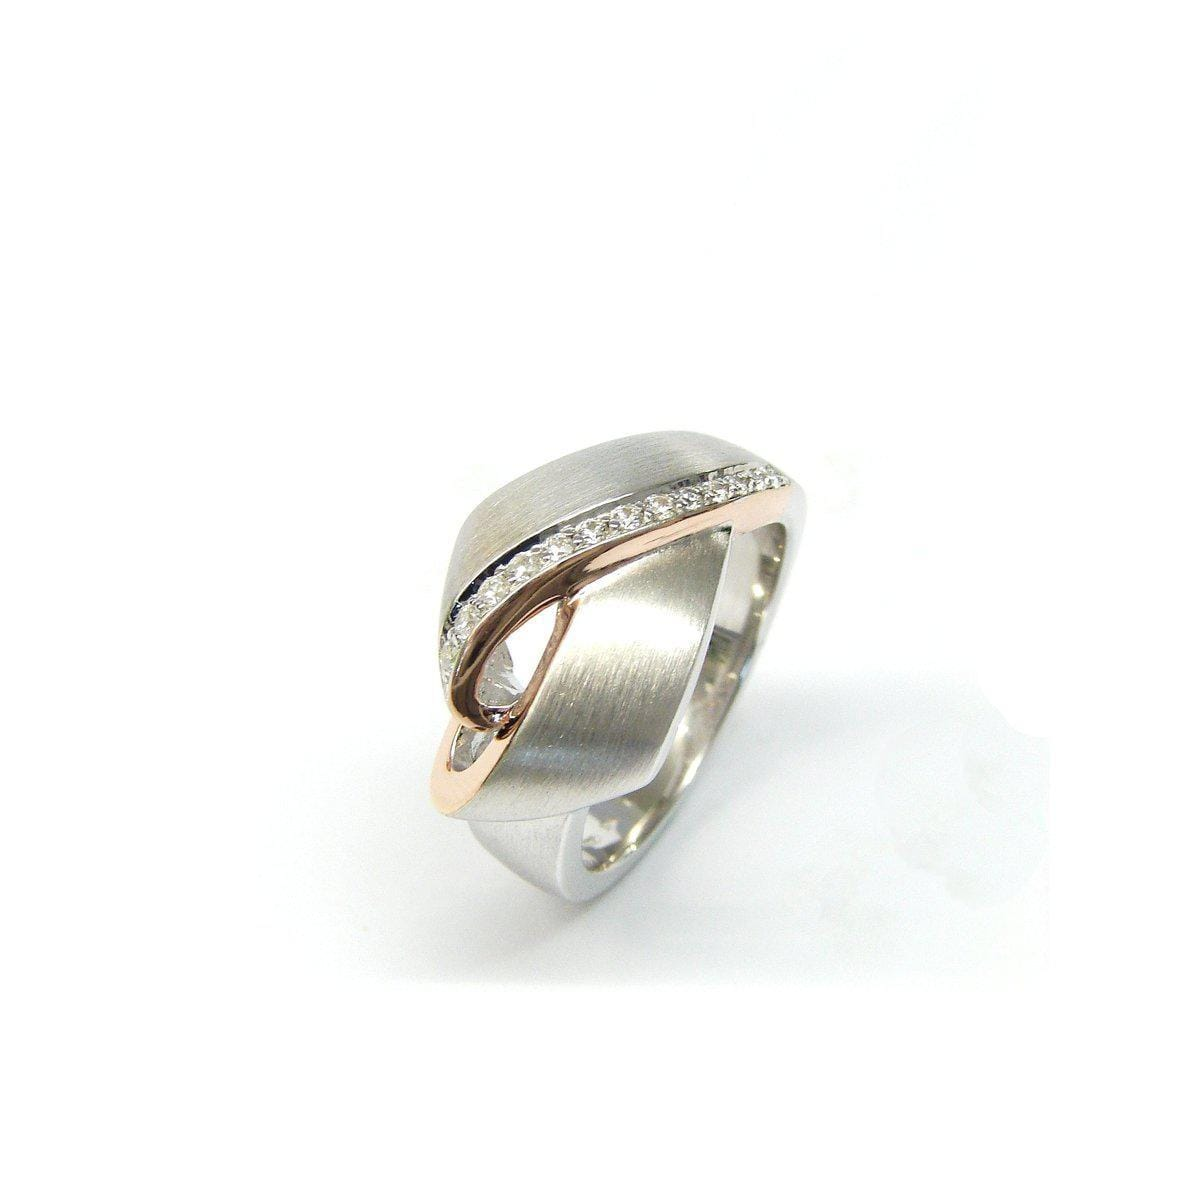 Rose Gold Plated Sterling Silver White Sapphire Ring - 42/84807-3-Breuning-Renee Taylor Gallery